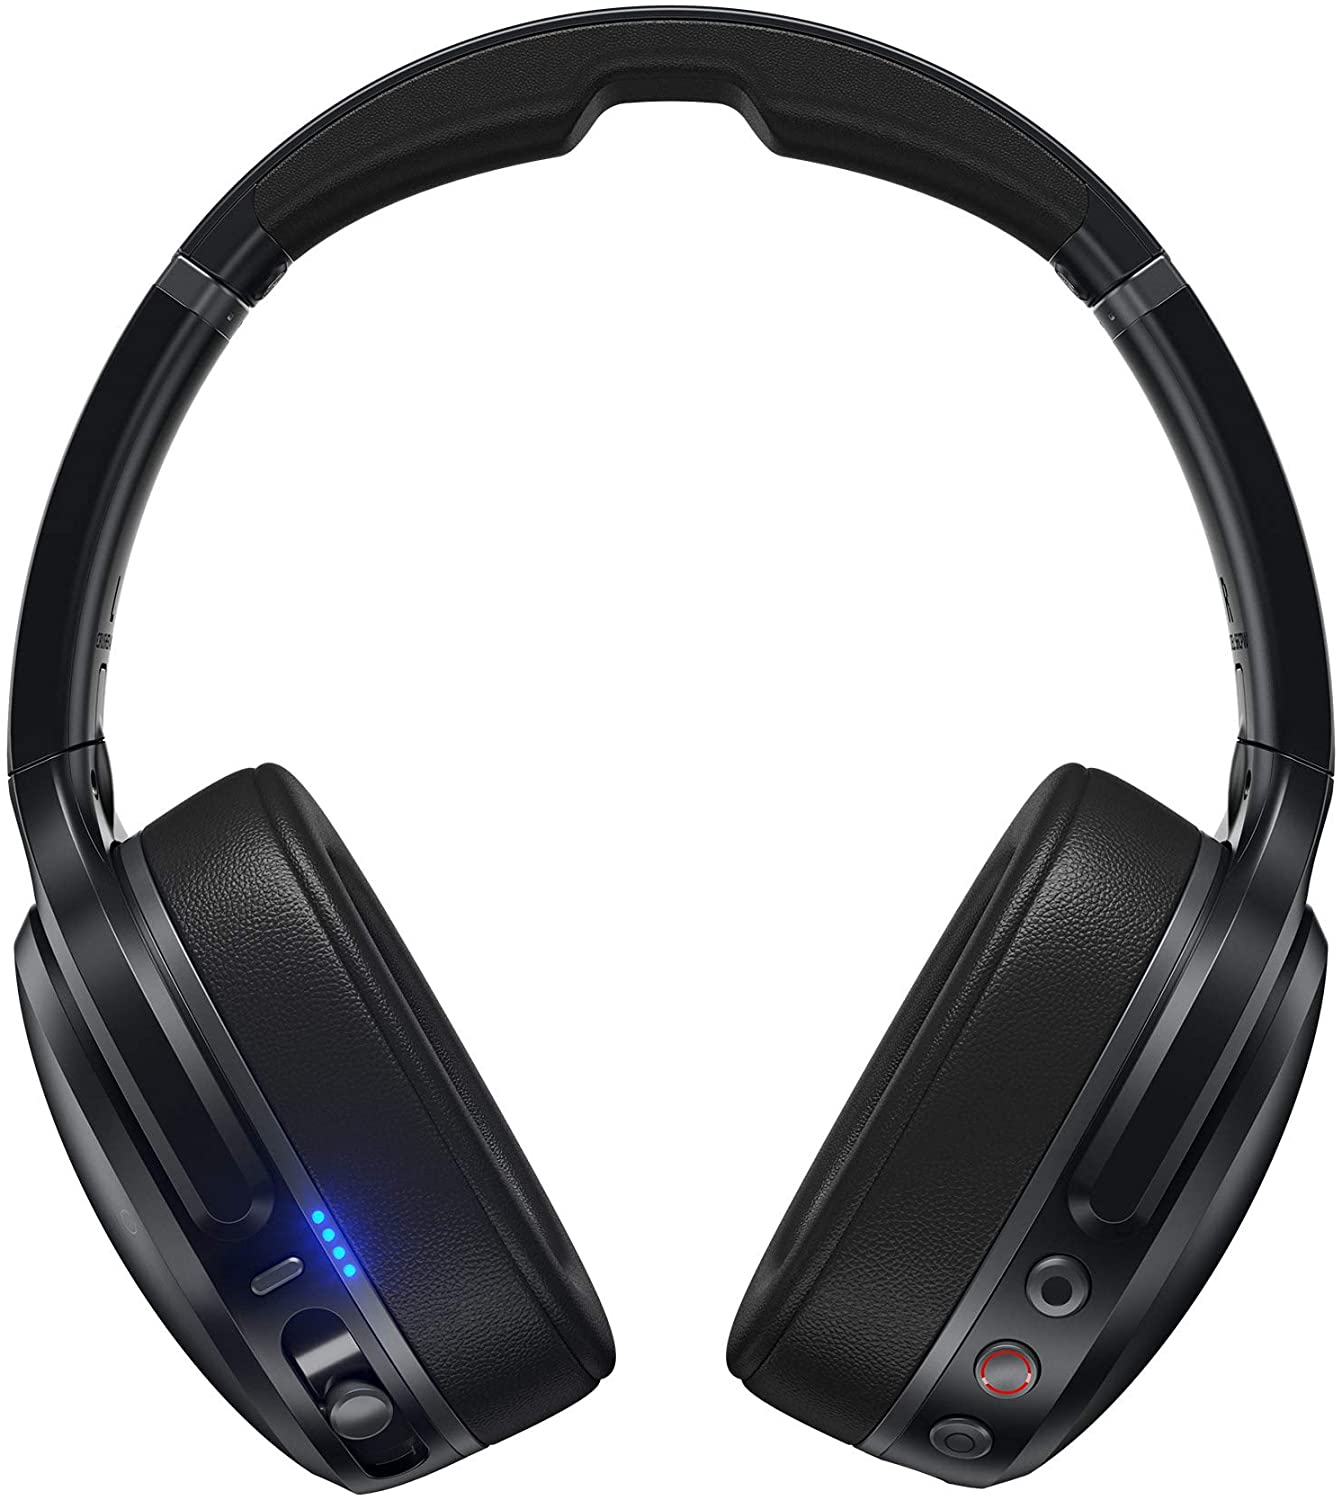 Skullcandy Crusher ANC Bluetooth Wireless Over Ear Headphones, Noise Cancellation, Adjustable Bass, and Personalised Sound, Up to 24 Hours Battery